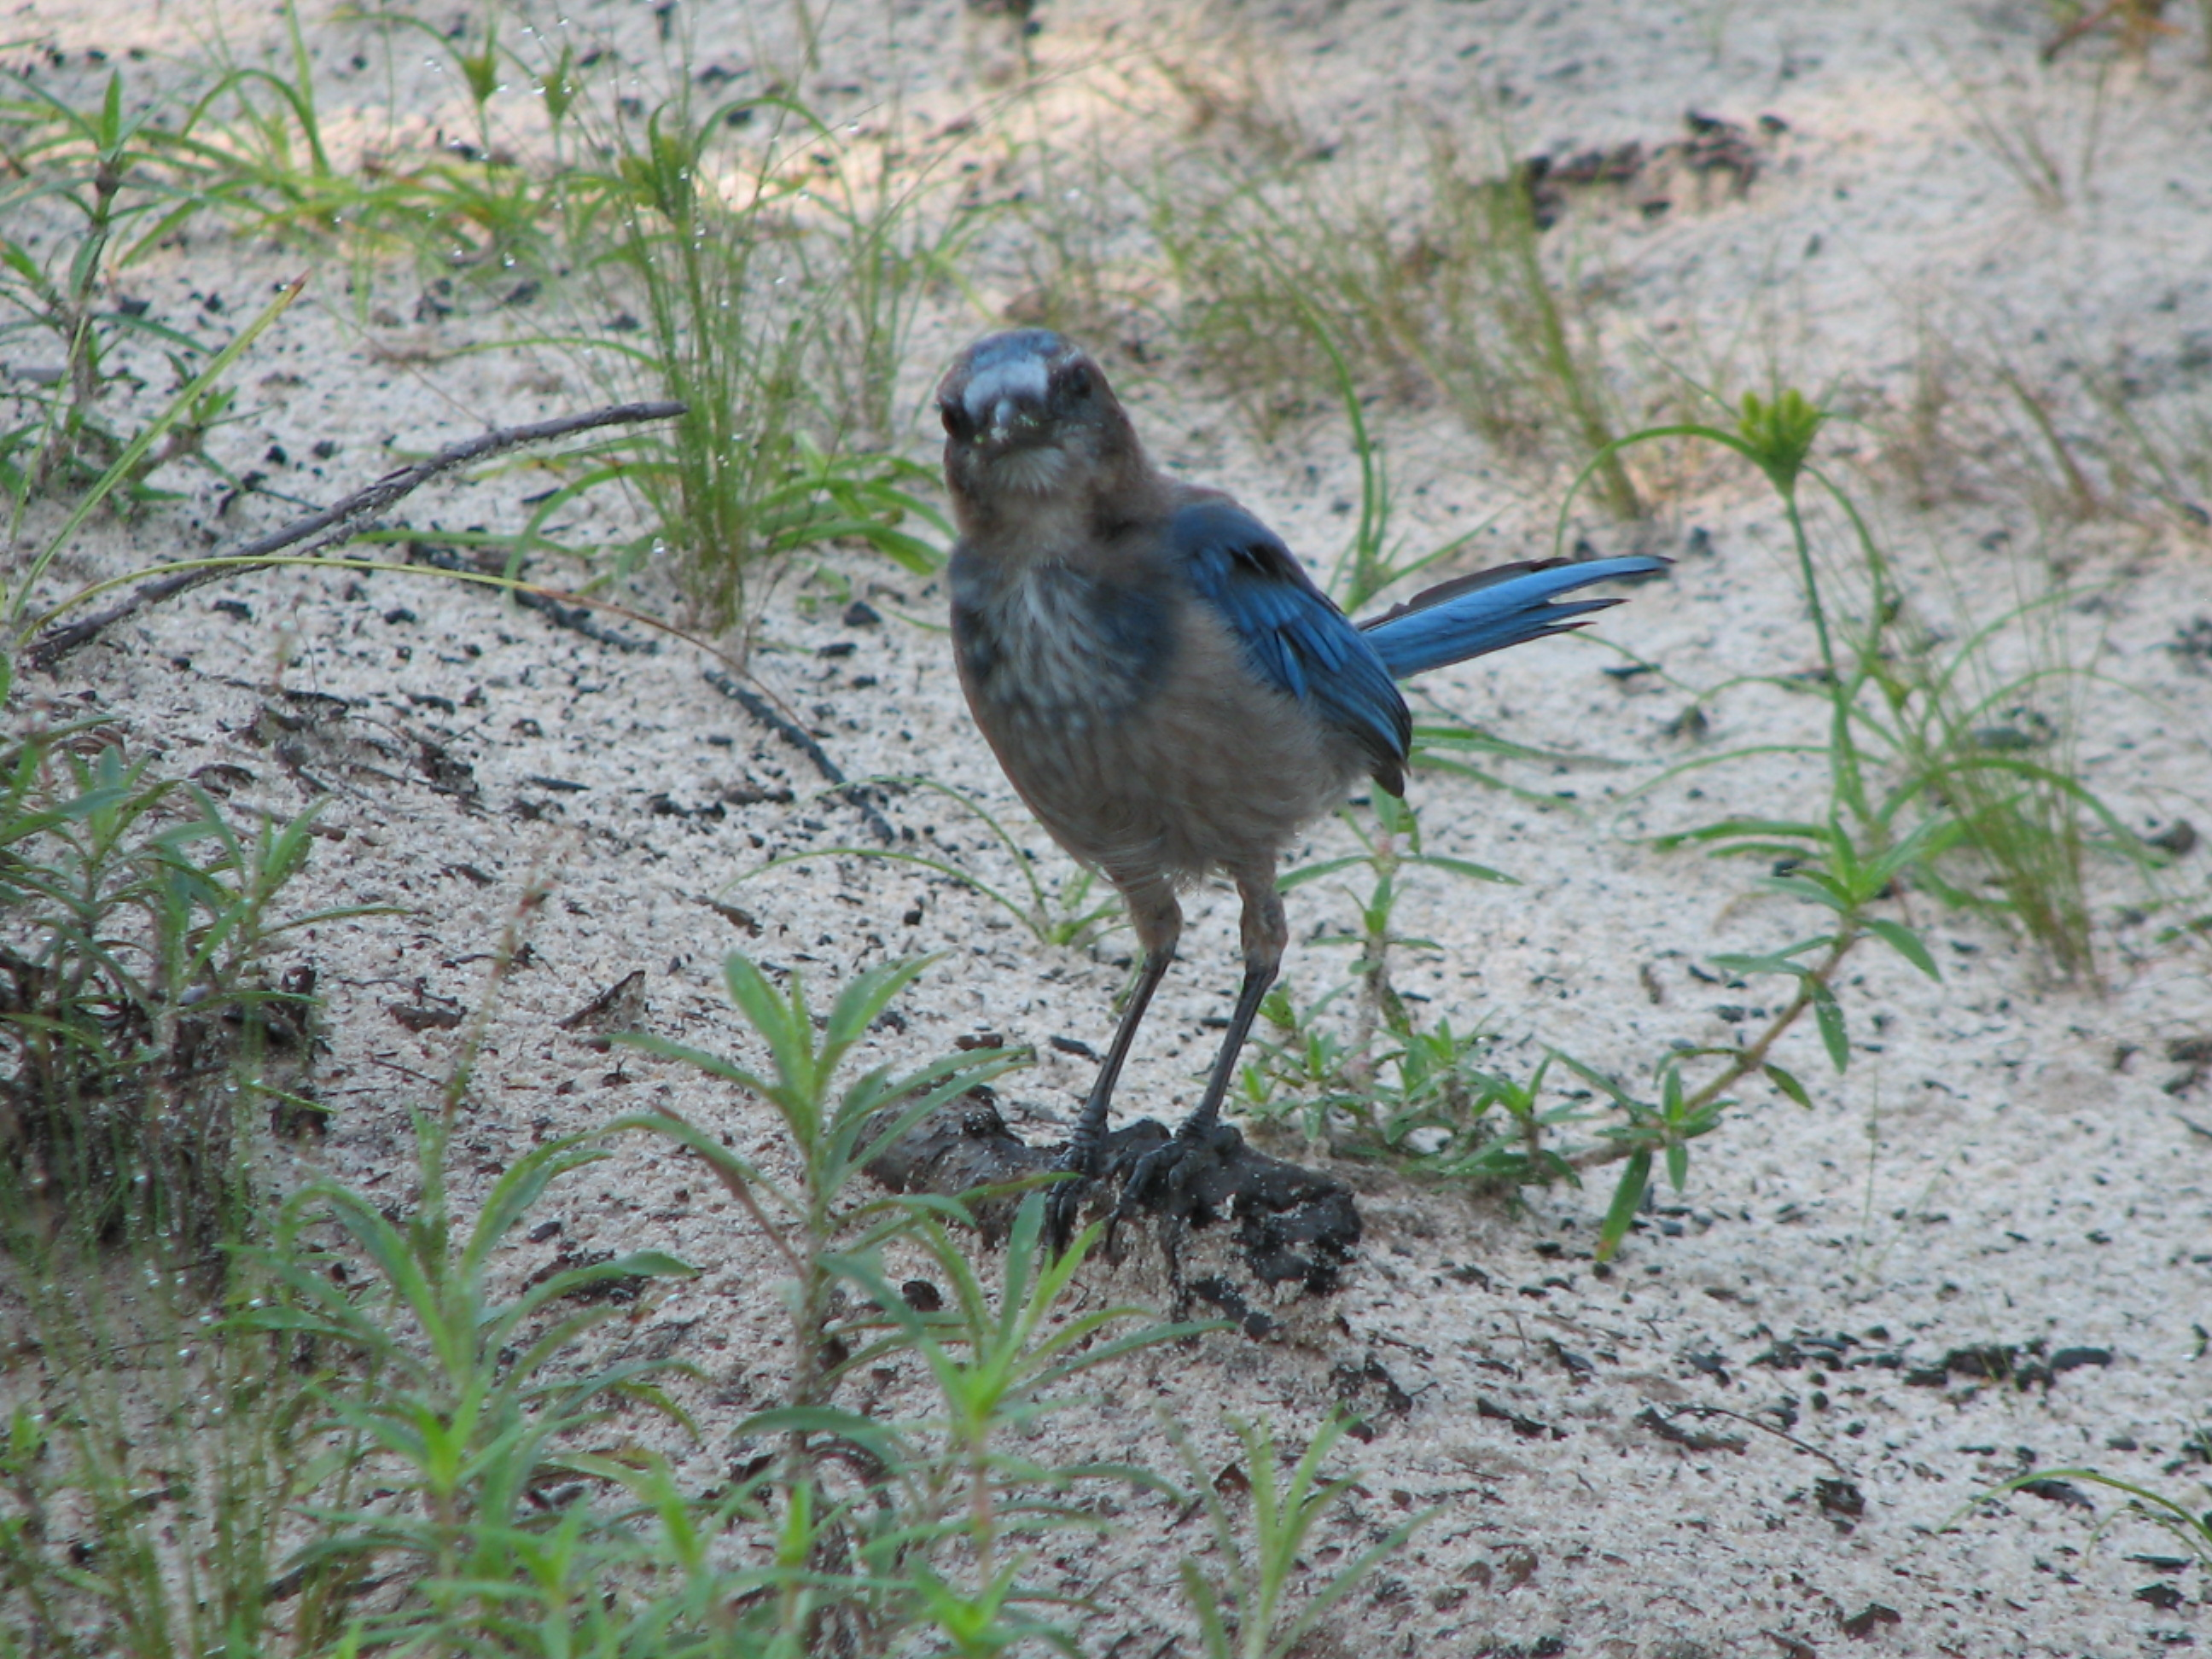 A curious Florida scrub-jay watches as we take its photograph.